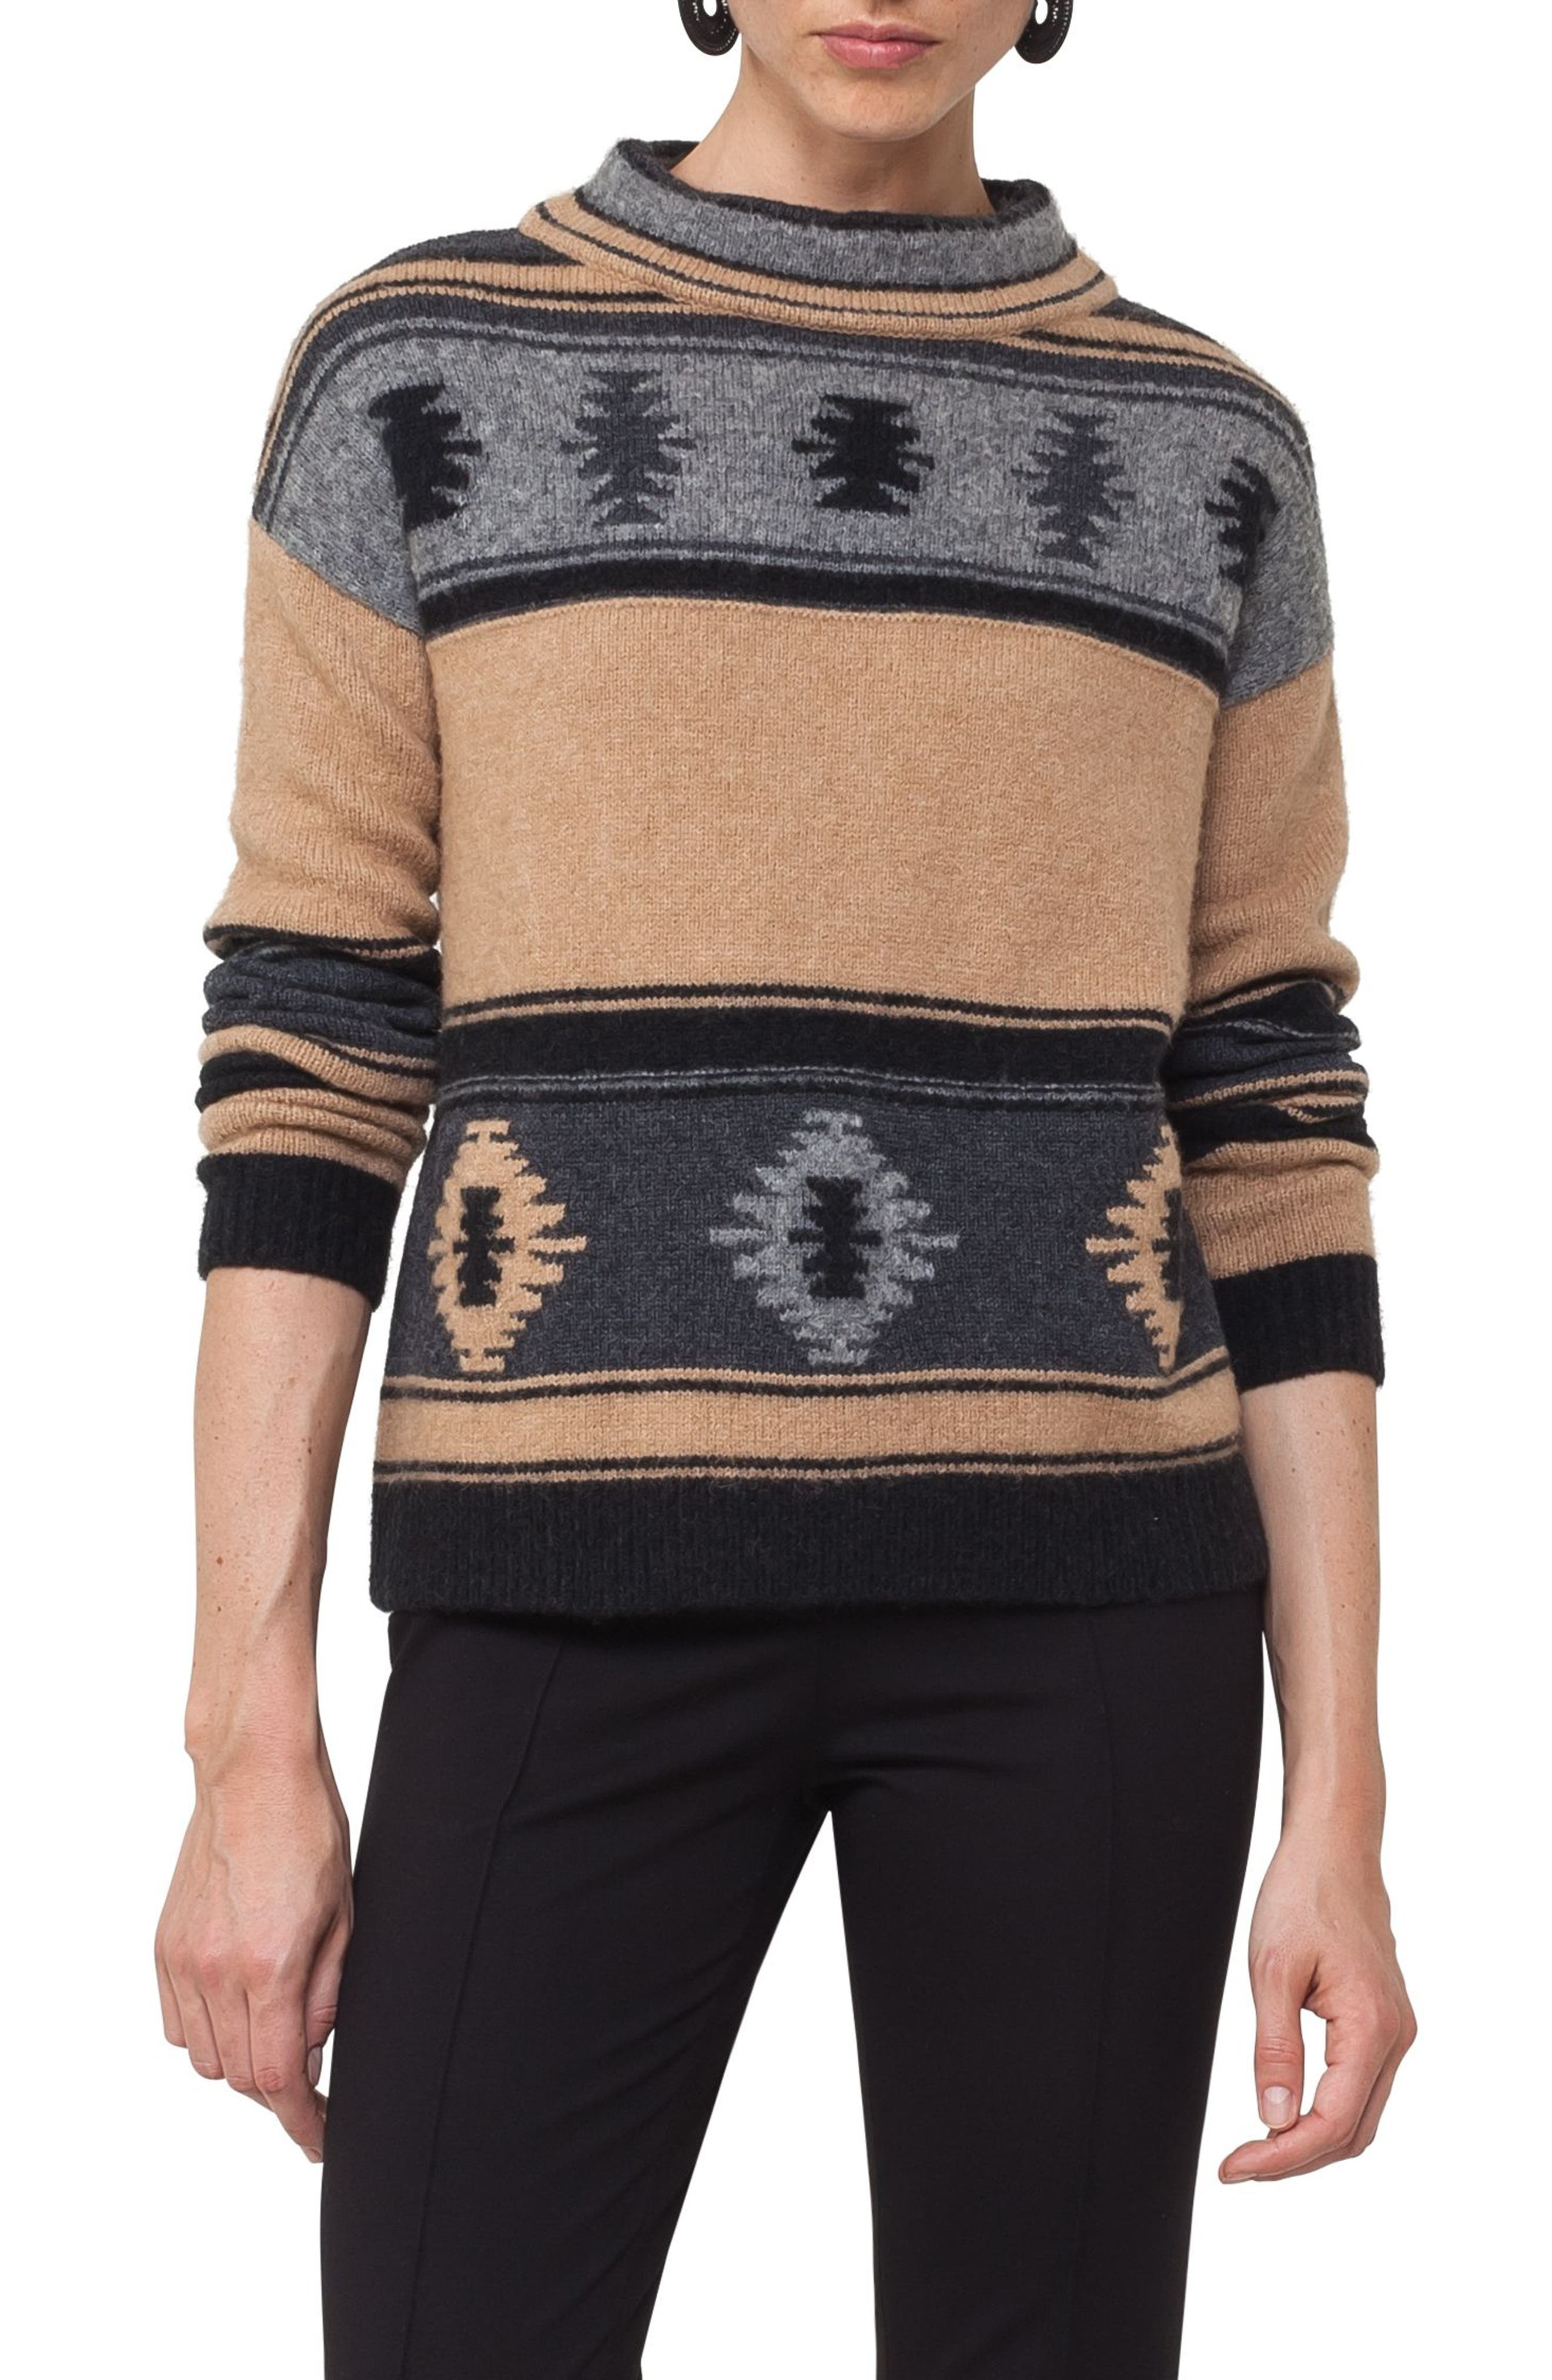 Wool Blend Pullover,                         Main,                         color, Vicunia/ Stone/ Black